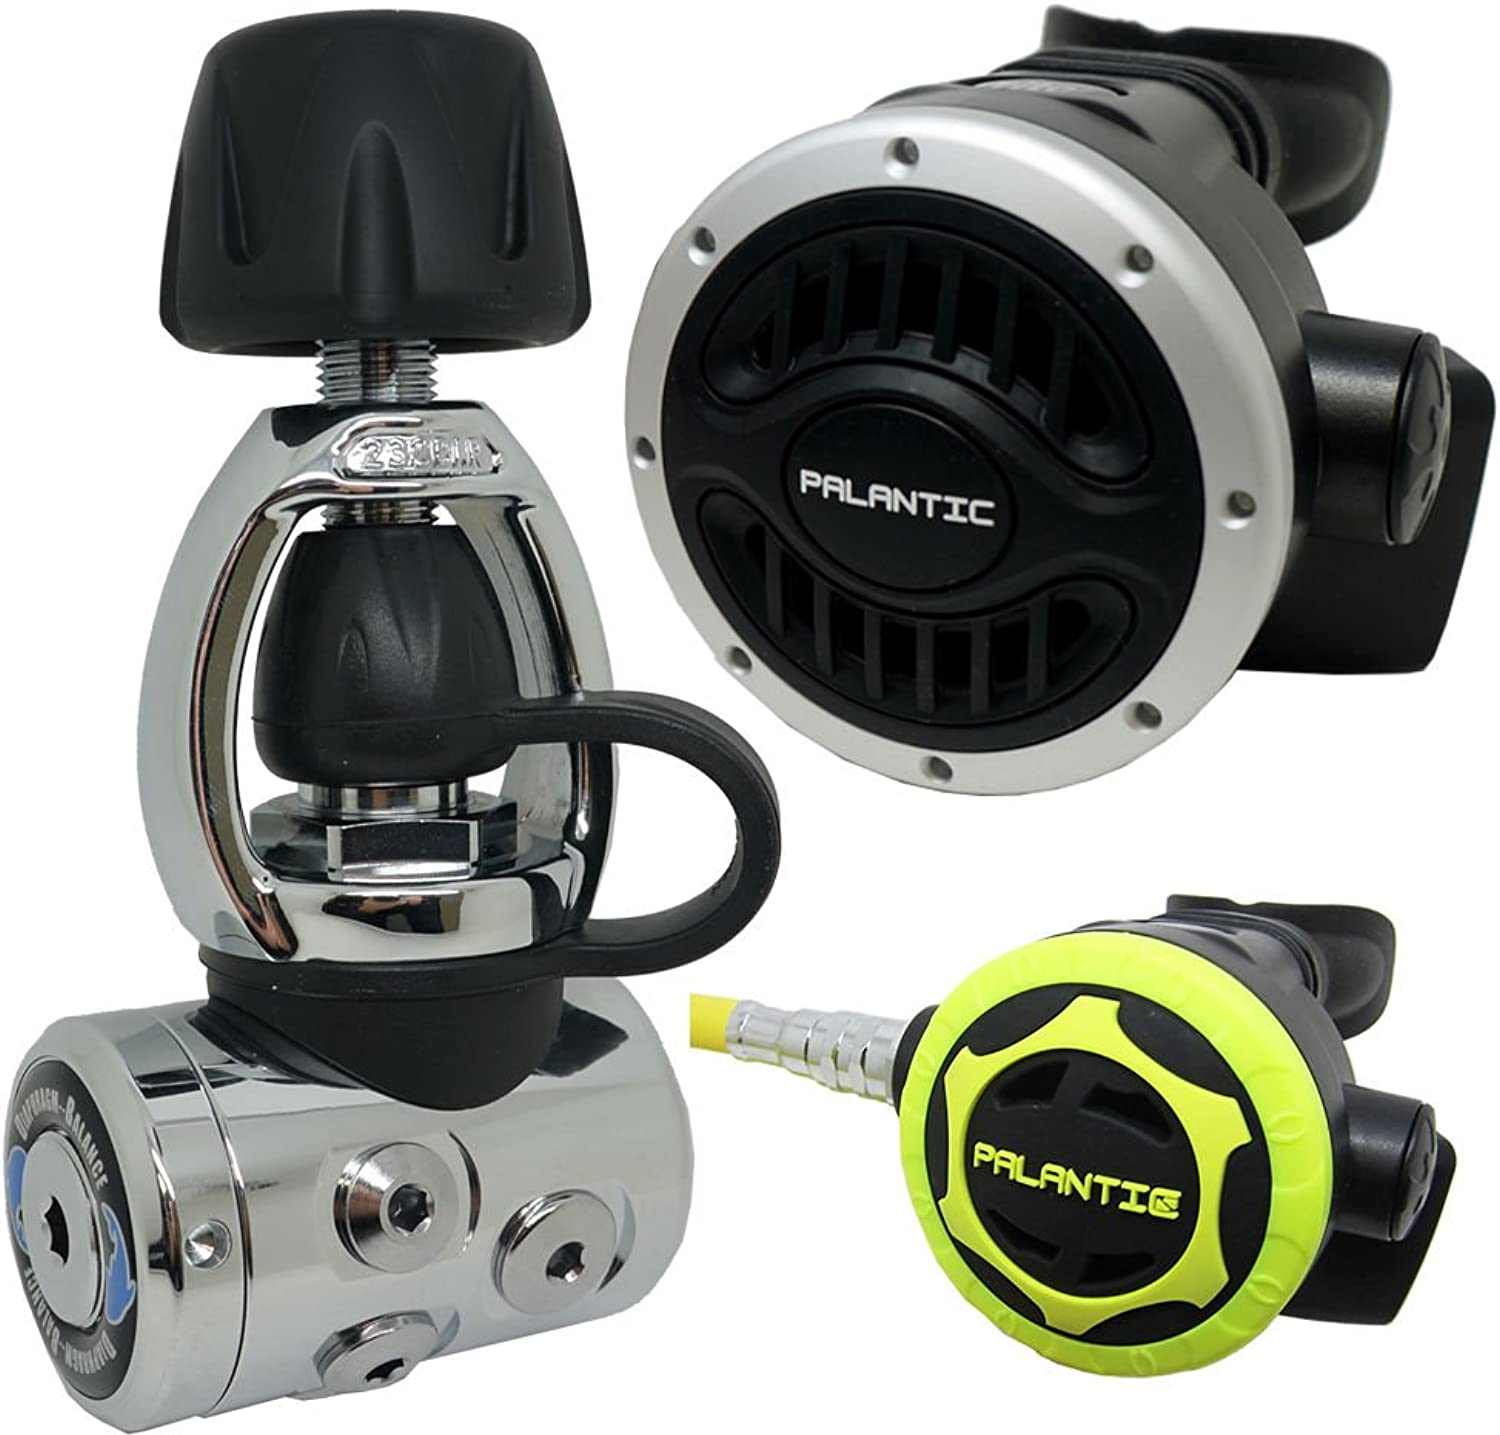 Palantic SCR03YOKENAOC Scuba Diving Dive AS105 Yoke Regulator and Octopus Combo